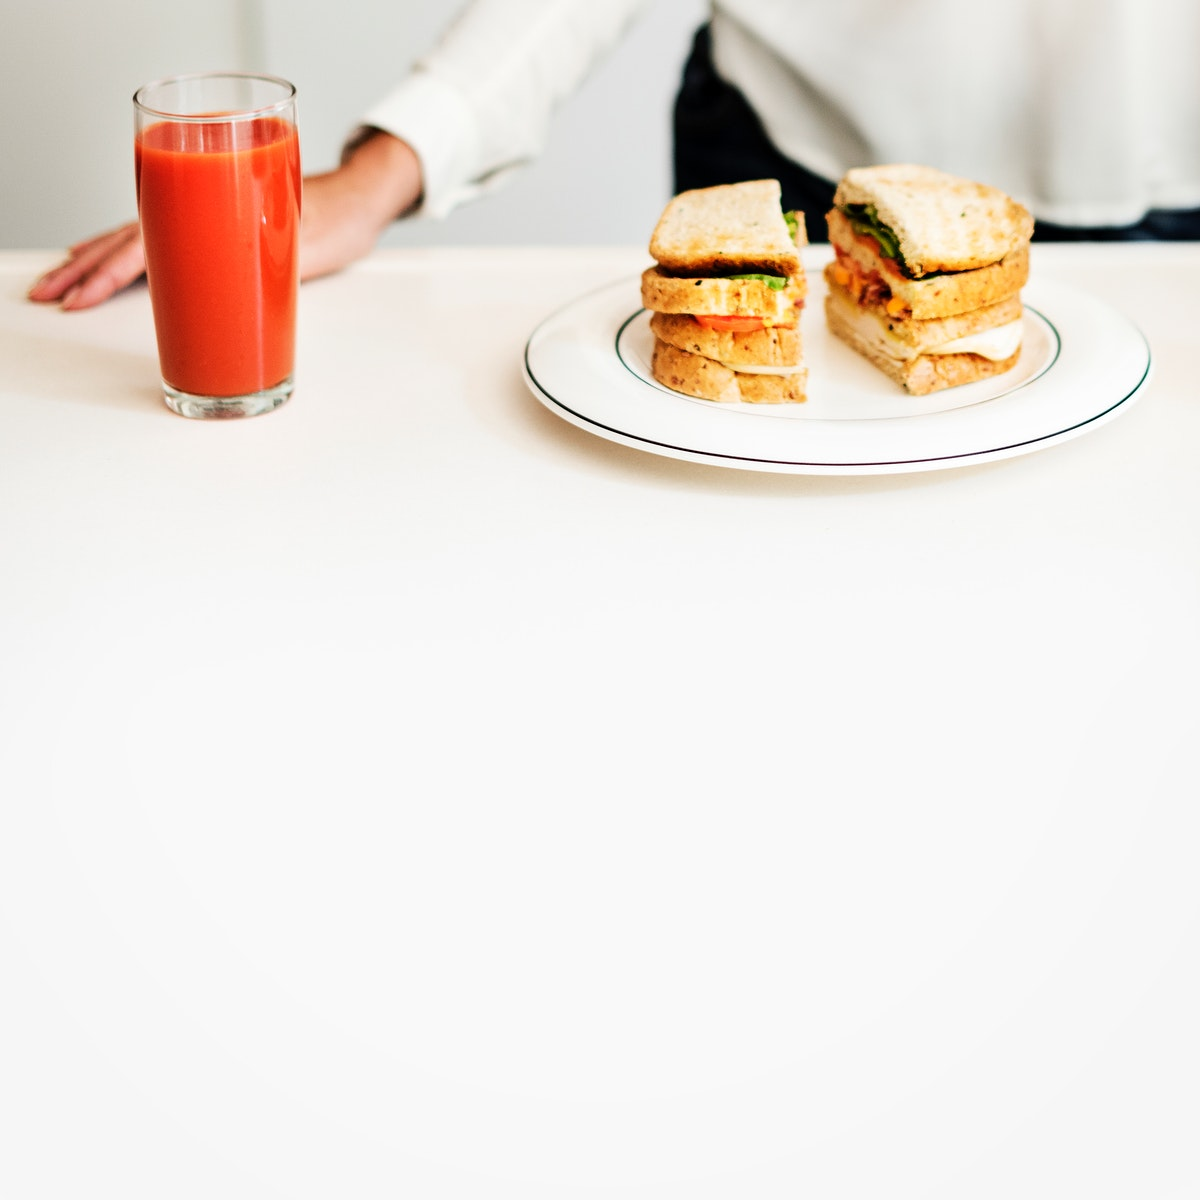 Closeup of sandwich and juice on white table